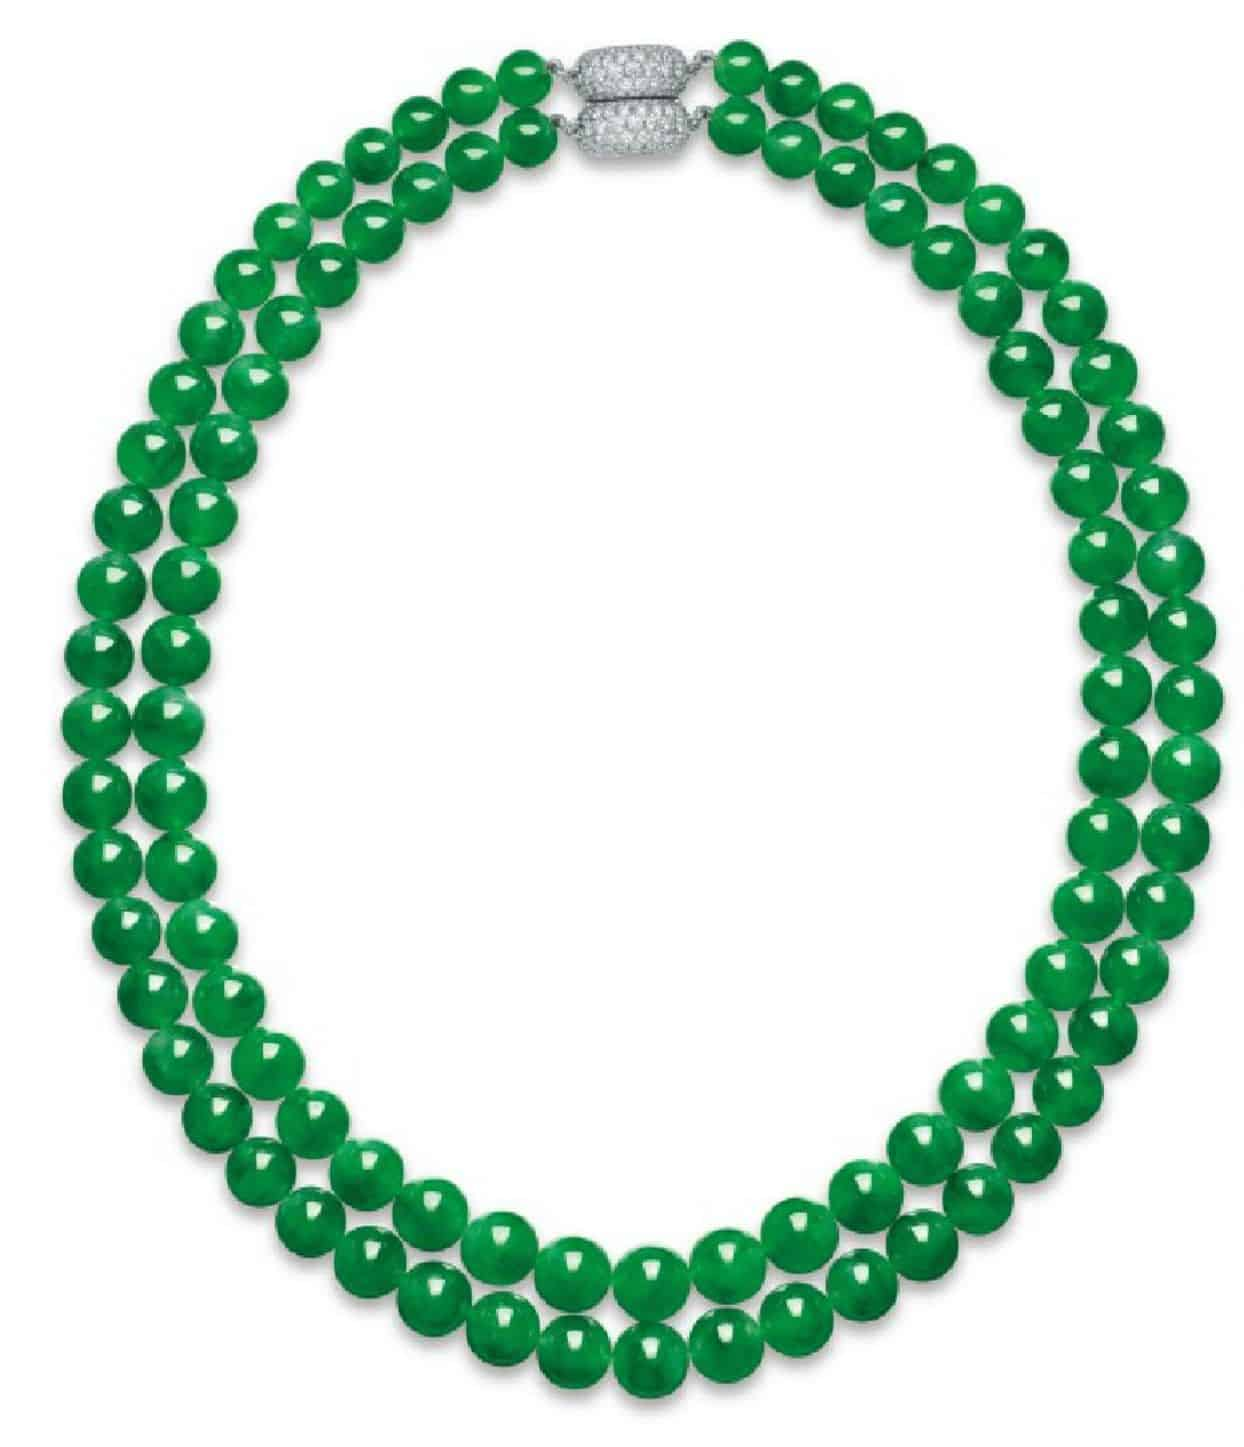 LOT 2011 - AN IMPORTANT JADEITE AND DIAMOND NECKLACE